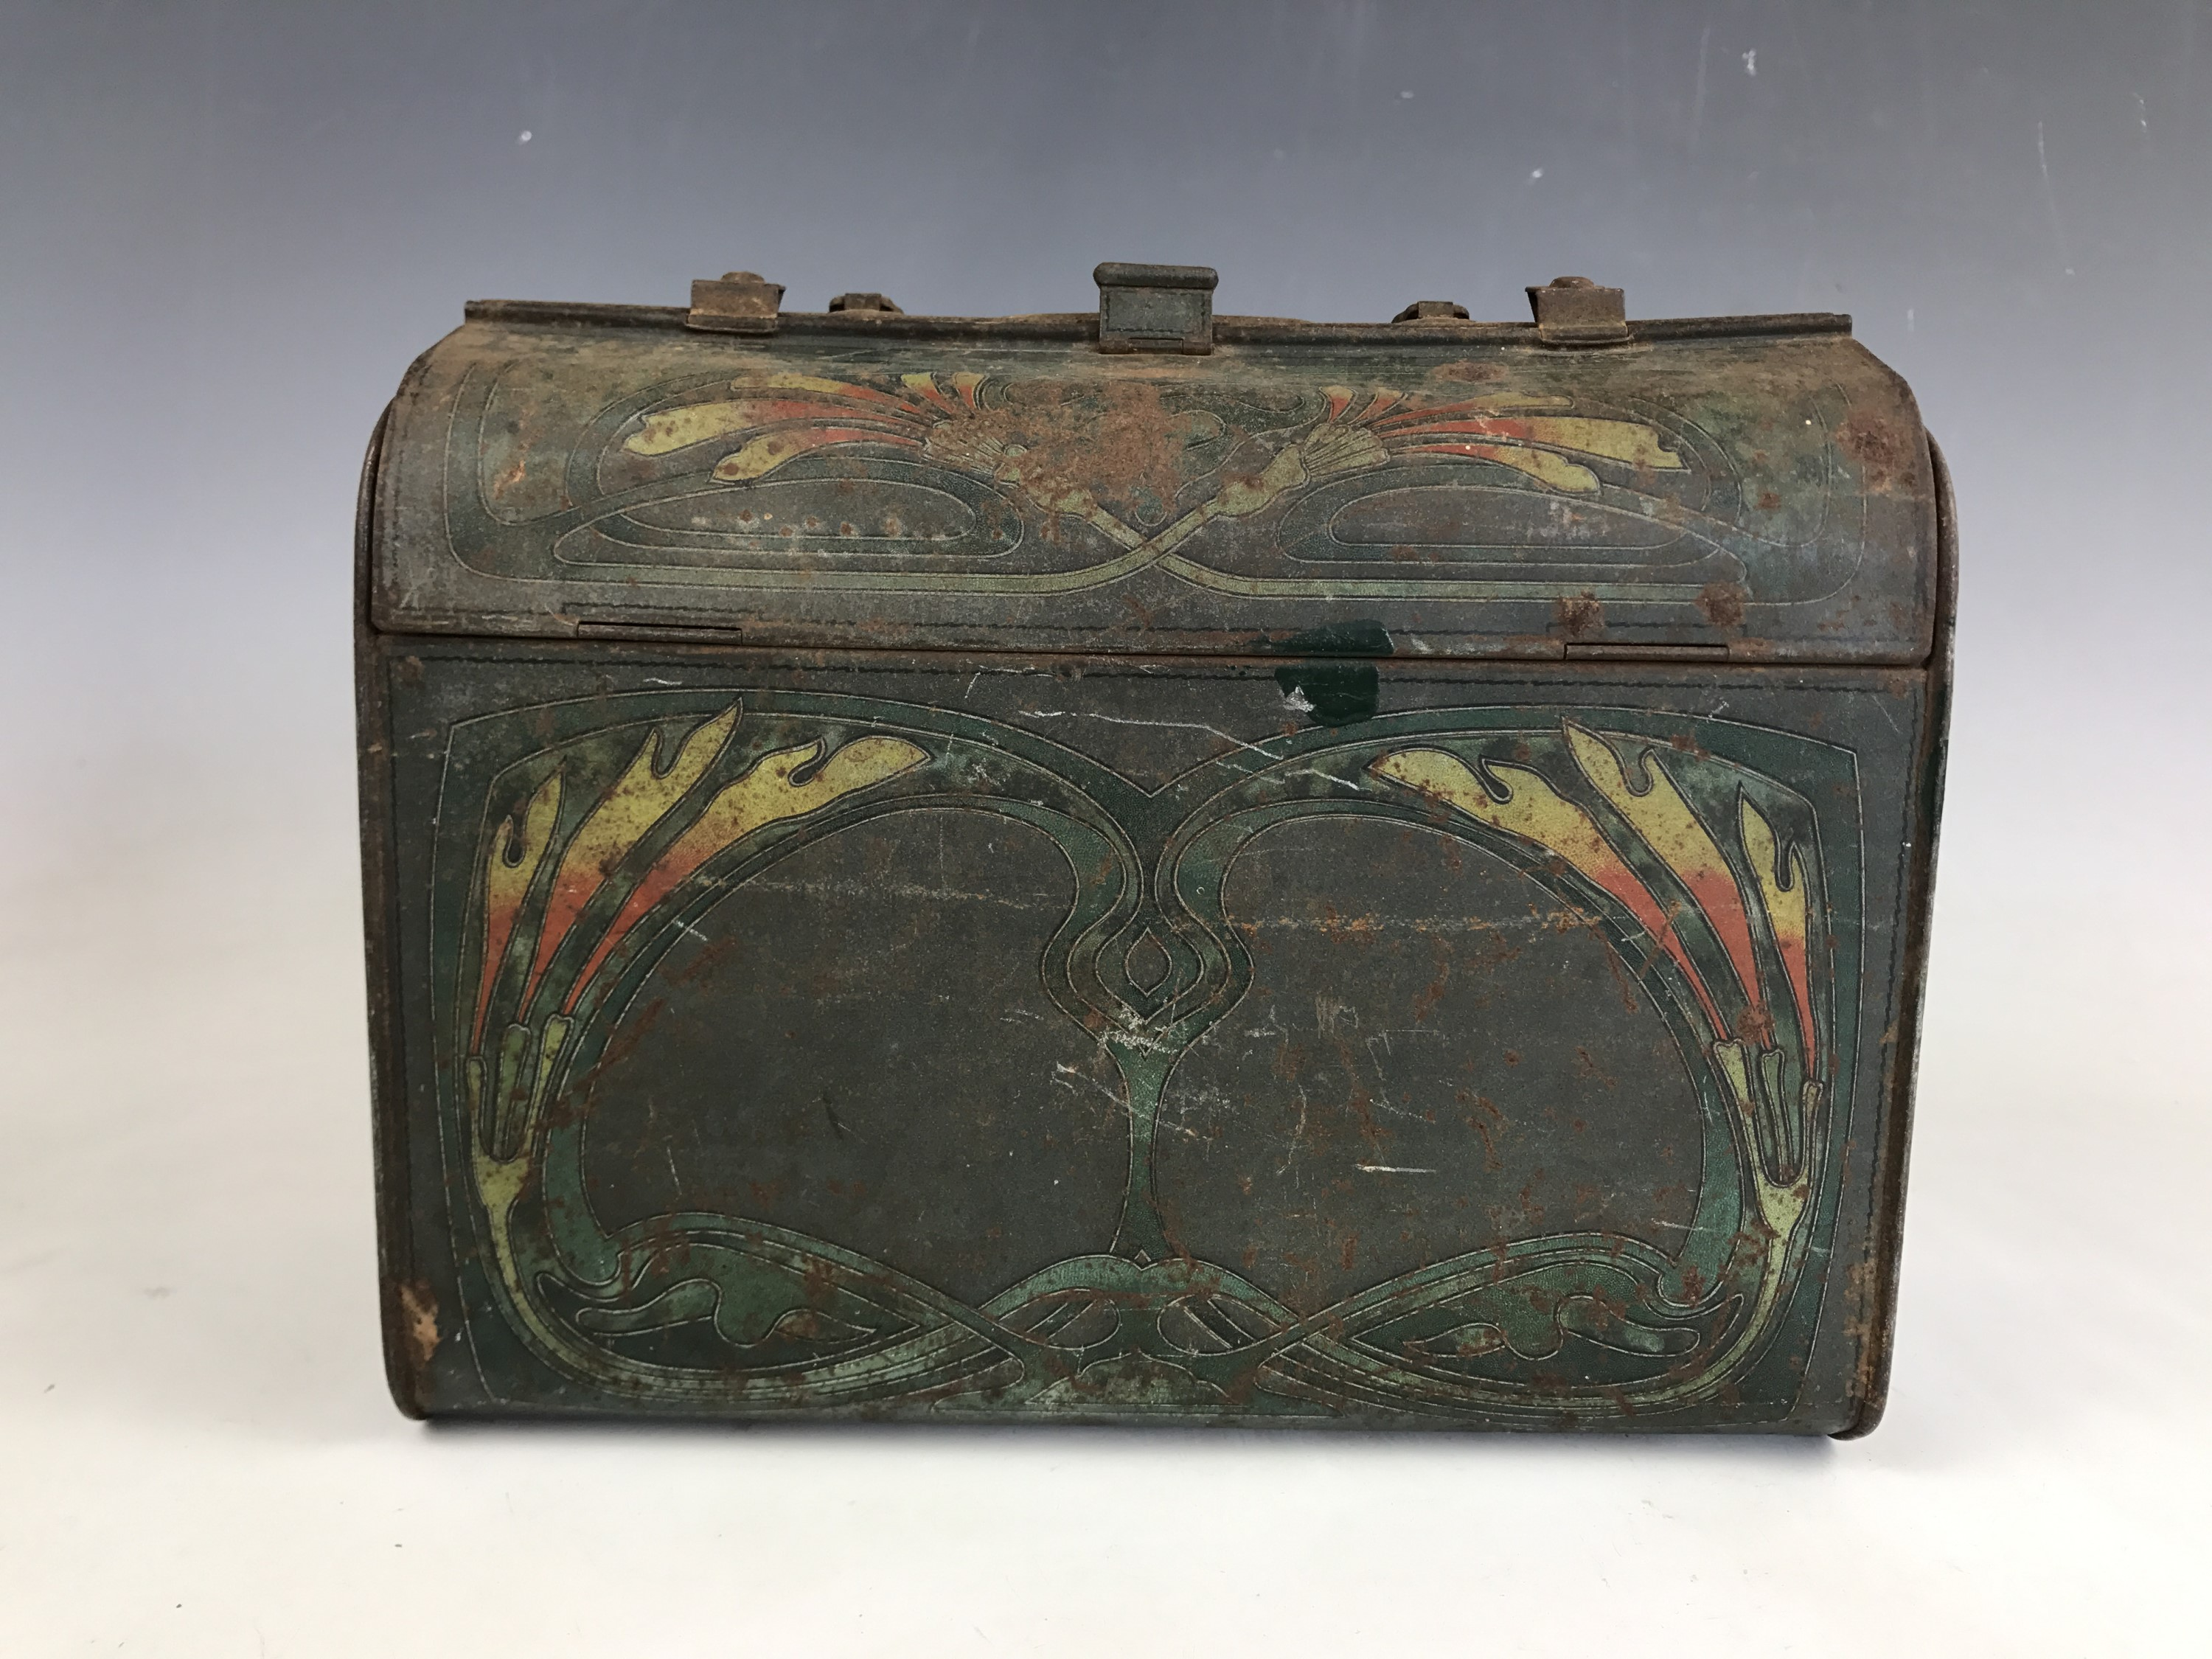 Lot 45 - A Huntley and Palmers novelty biscuit tin, modelled in the form of a gladstone bag, 21 x 10 x 17